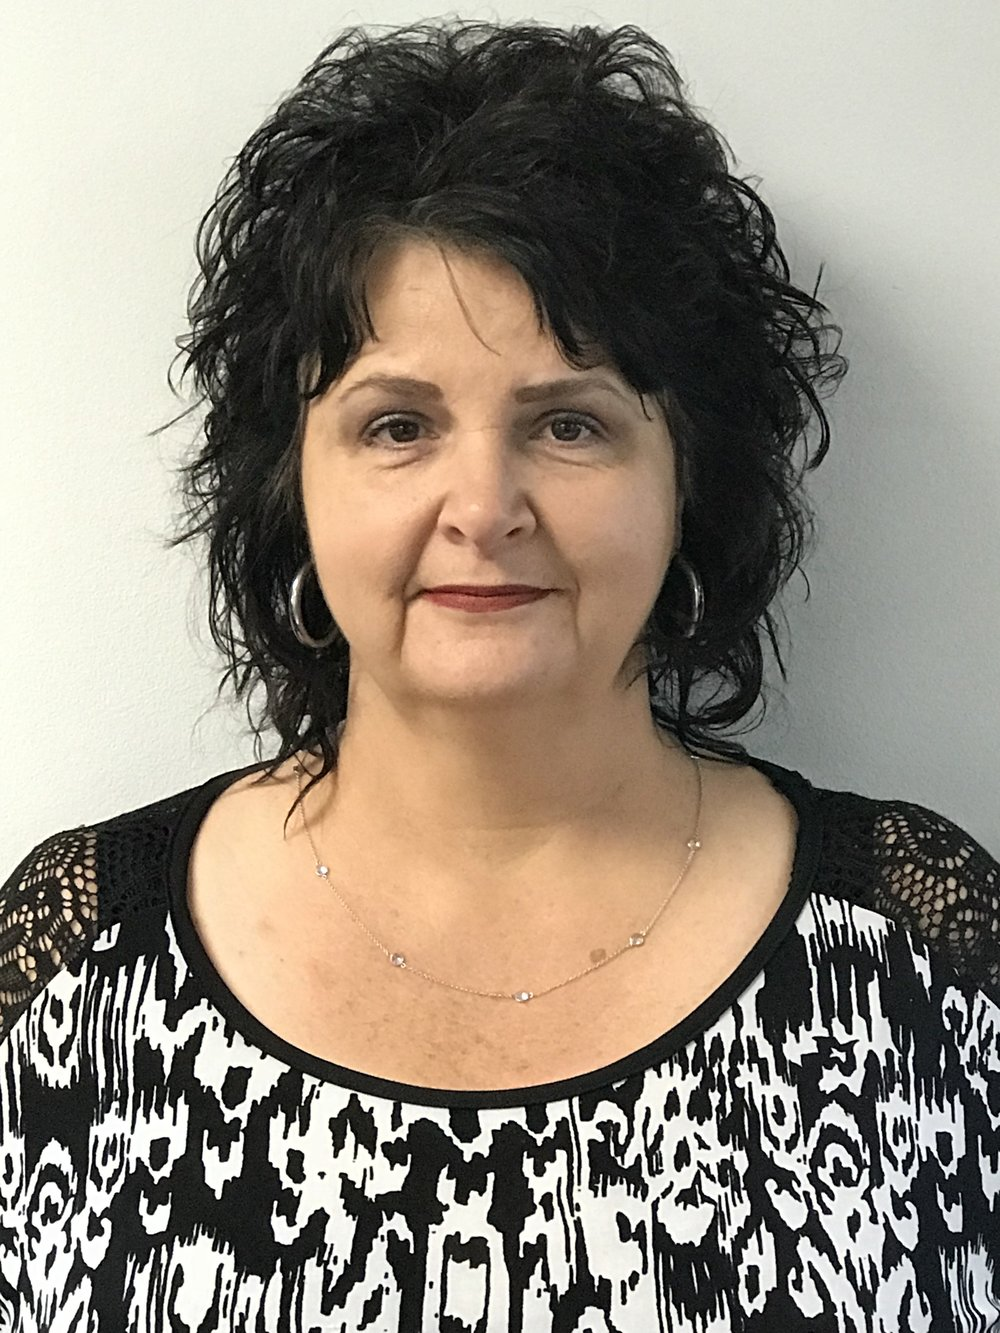 KATHY TROXELL  has worked at the water district since 1994 and serves as our Administrative Assistant. She completed the Utility Management Institute in 2013.